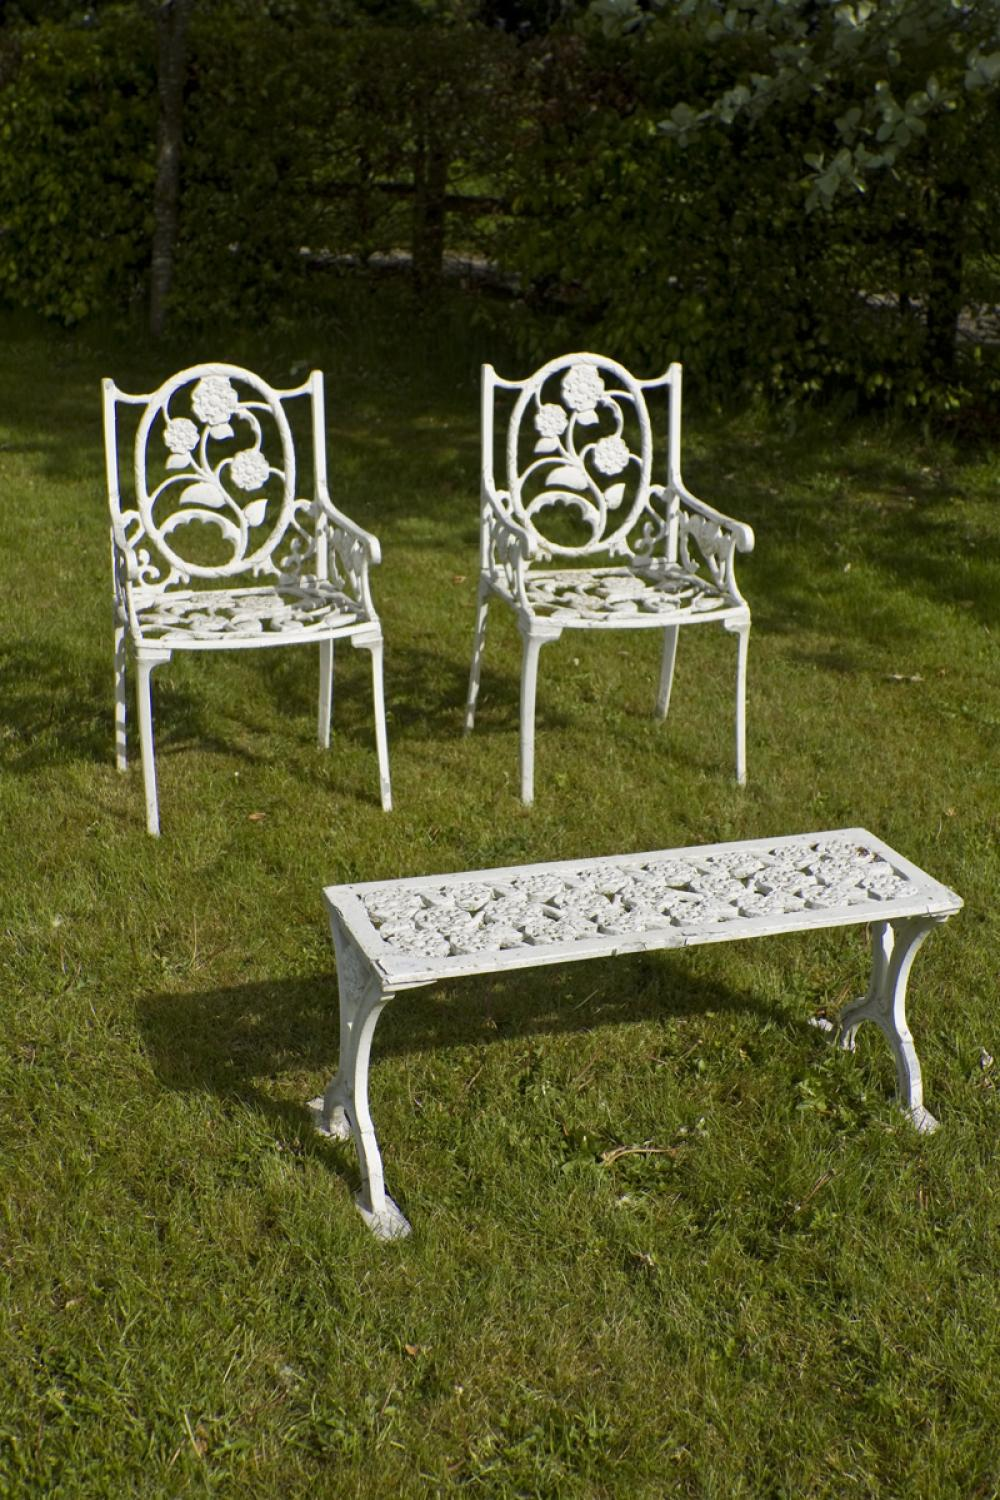 Vintage Cast Iron Chairs and table